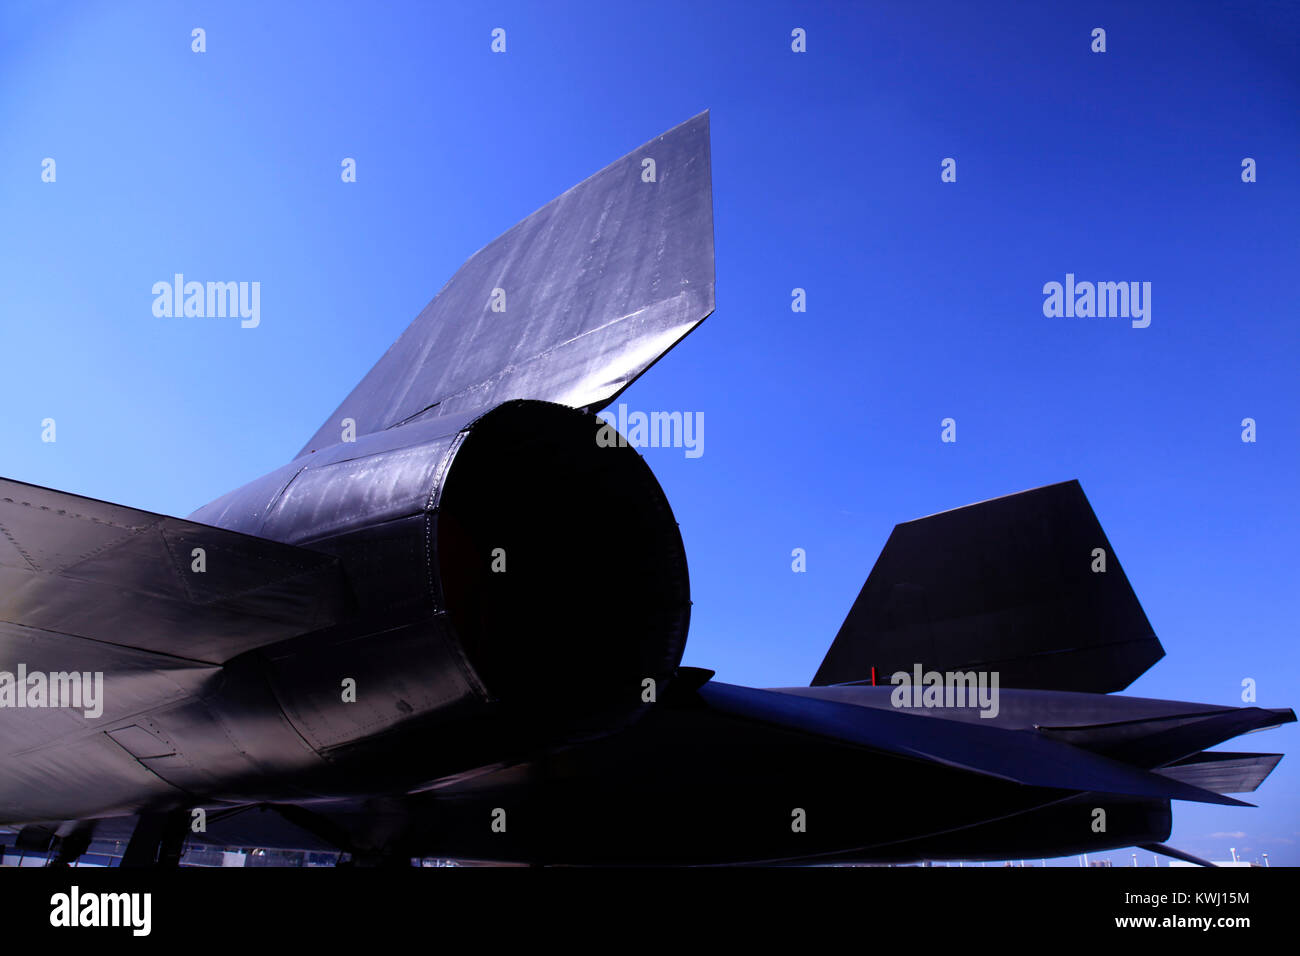 A fighter jet plane, blackbird in NYC - Stock Image